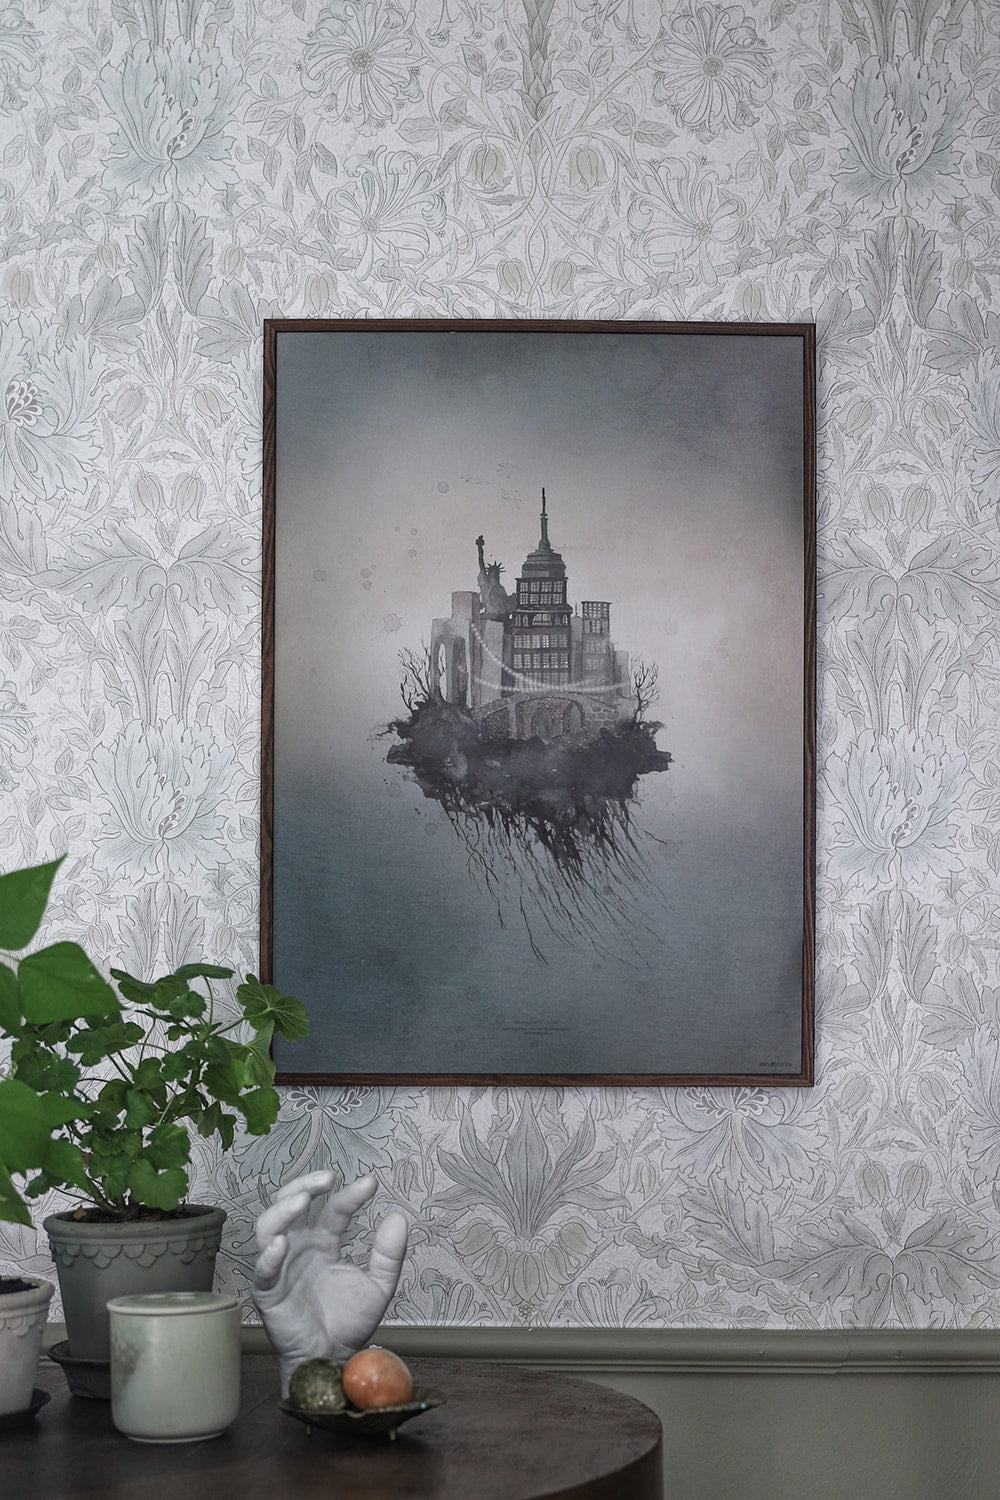 Mrs. Mighetto New Floating York Print - 50x70 cm